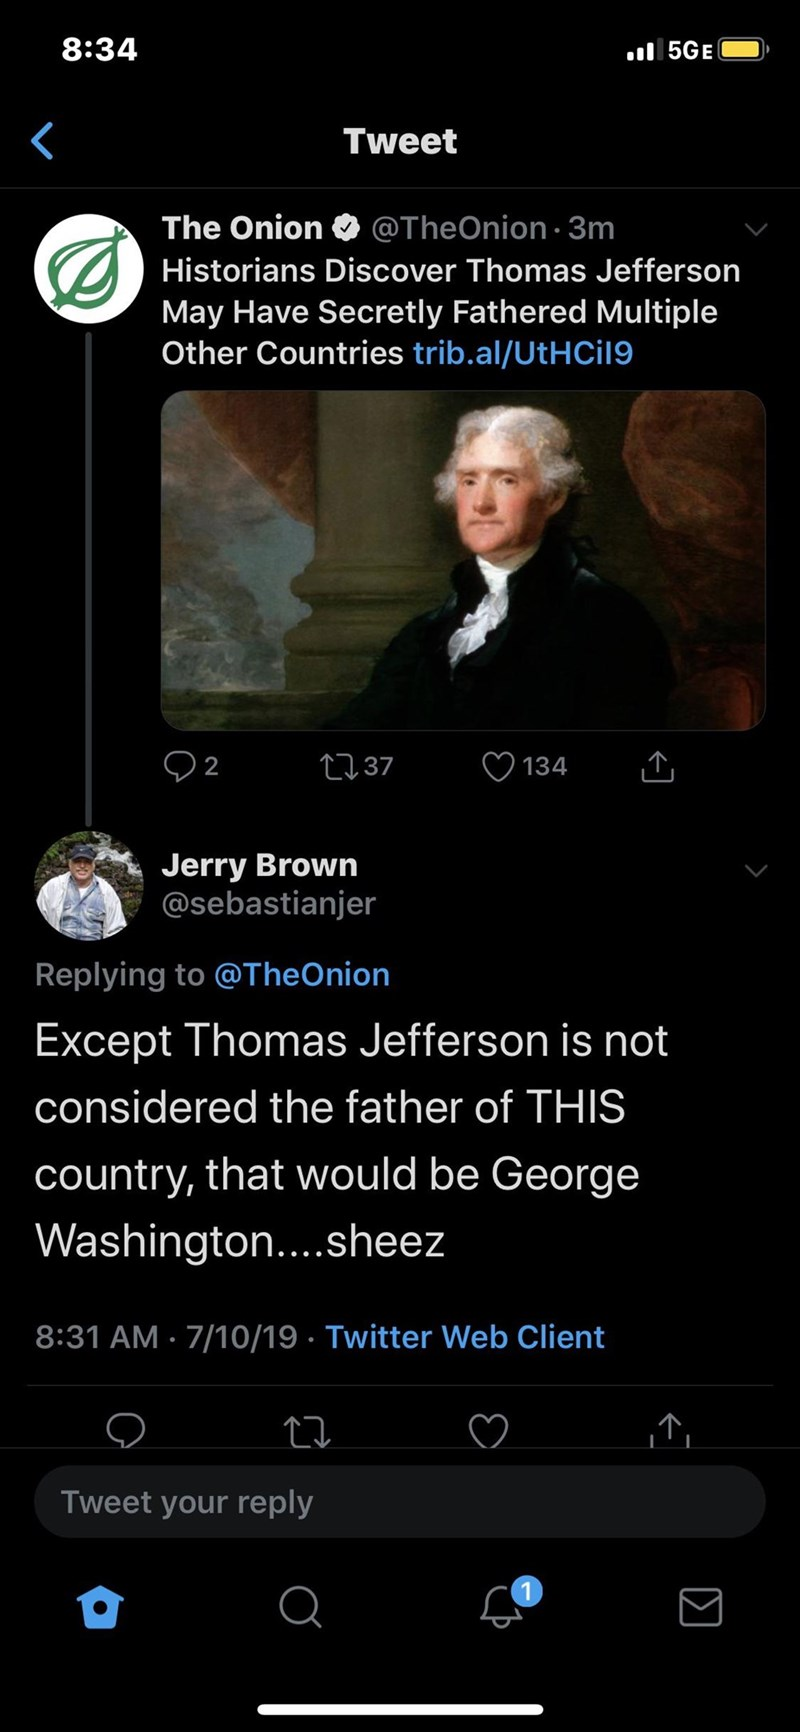 Text - 8:34 5GE Tweet The Onion @TheOnion3m Historians Discover Thomas Jefferson May Have Secretly Fathered Multiple Other Countries trib.al/UtHCil9 2 LI37 134 Jerry Brown @sebastianjer Replying to @TheOnion Except Thomas Jefferson is not considered the father of THIS country, that would be George Washington....sheez 8:31 AM 7/10/19 Twitter Web Client T Tweet your reply Q